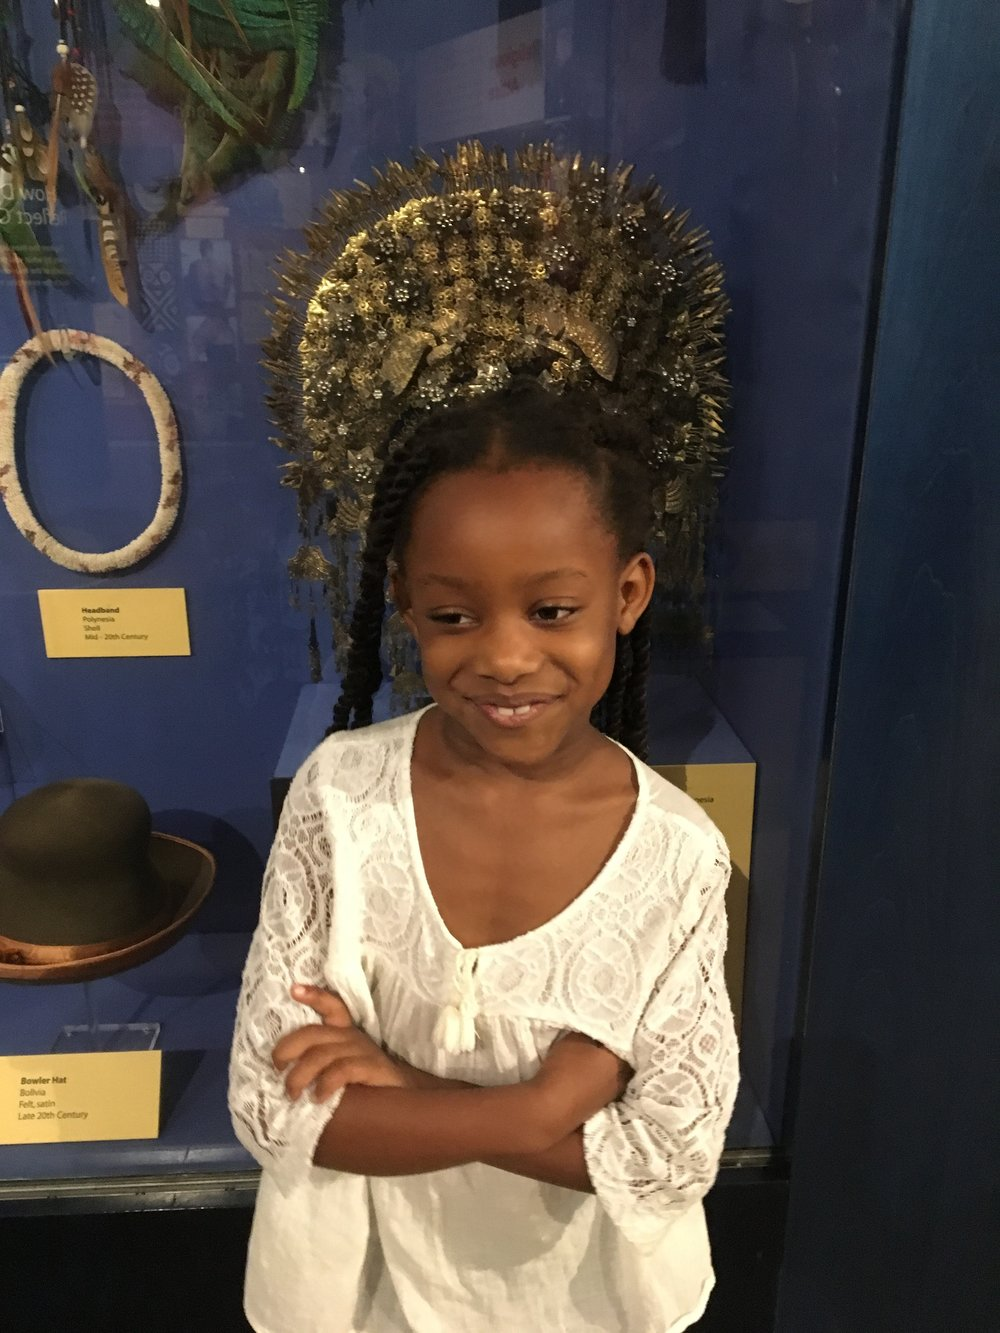 Azariah in front of one of the many opulent headpieces on display in the Reflections of Culture exhibit.